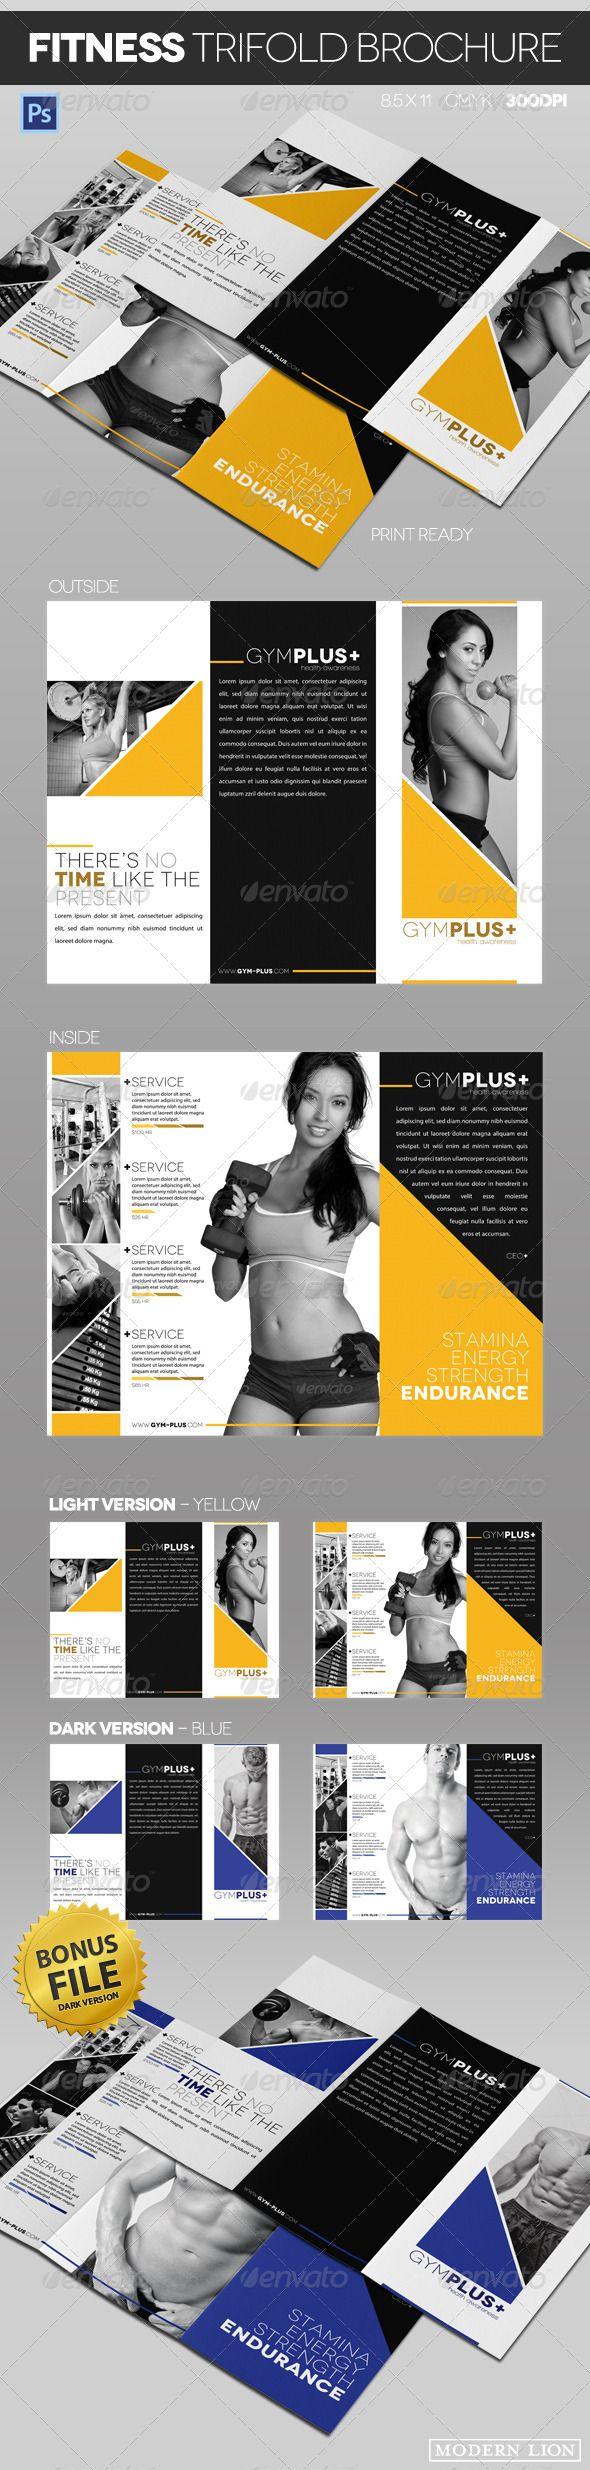 """Fitness Gym Trifold Brochure  #GraphicRiver        Fitness Gym Trifold Brochure: Sleek and modern fitness gym trifold brochure that comes in 2 color variations, dark and light (yellw and blue). Well organized layers in Photoshop. Great for brand new gym's or established fitness centers.  Please rate!   Features: - Fully Layered Adobe Photoshop .PSD files - 2 trifold Brochures color variations - Standard Letter size, 8.5"""" x 11"""" with bleeds - Print Ready, CMYK, 300 DPI - Guides for Bleed…"""